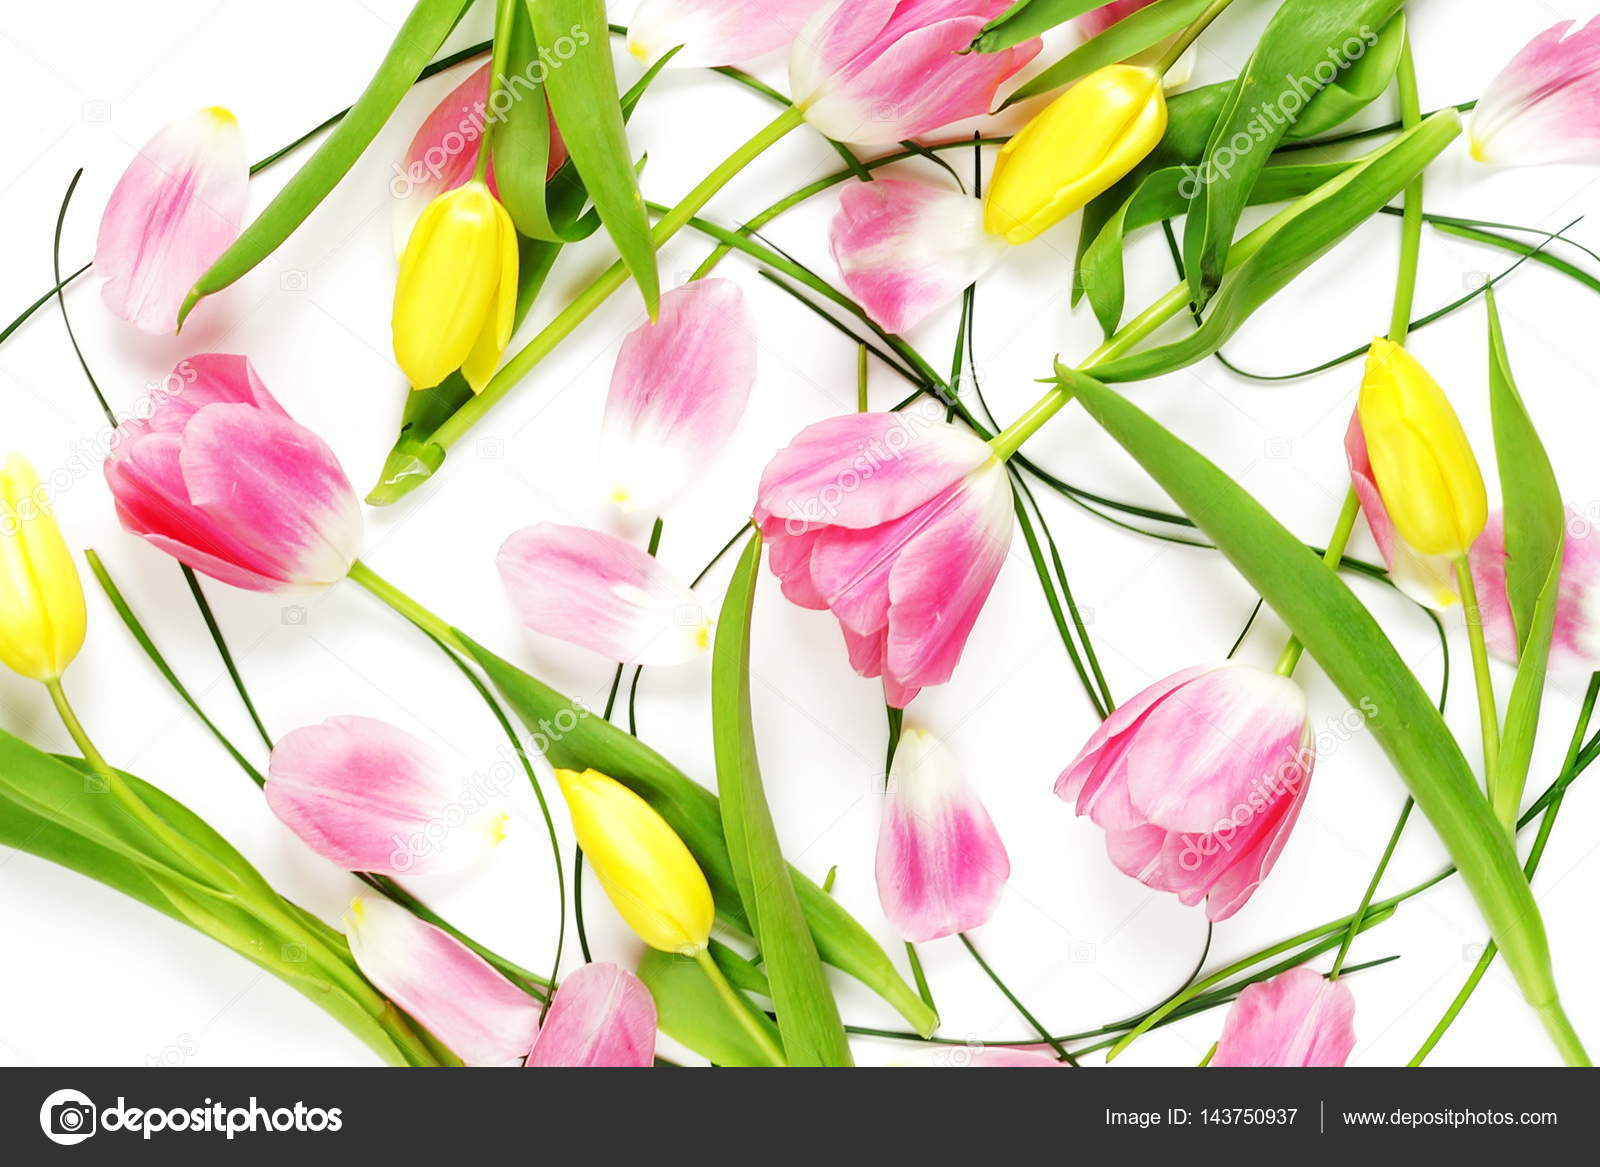 Floral Pattern Made Of Pink And Yellow Tulips Green Leaves On White